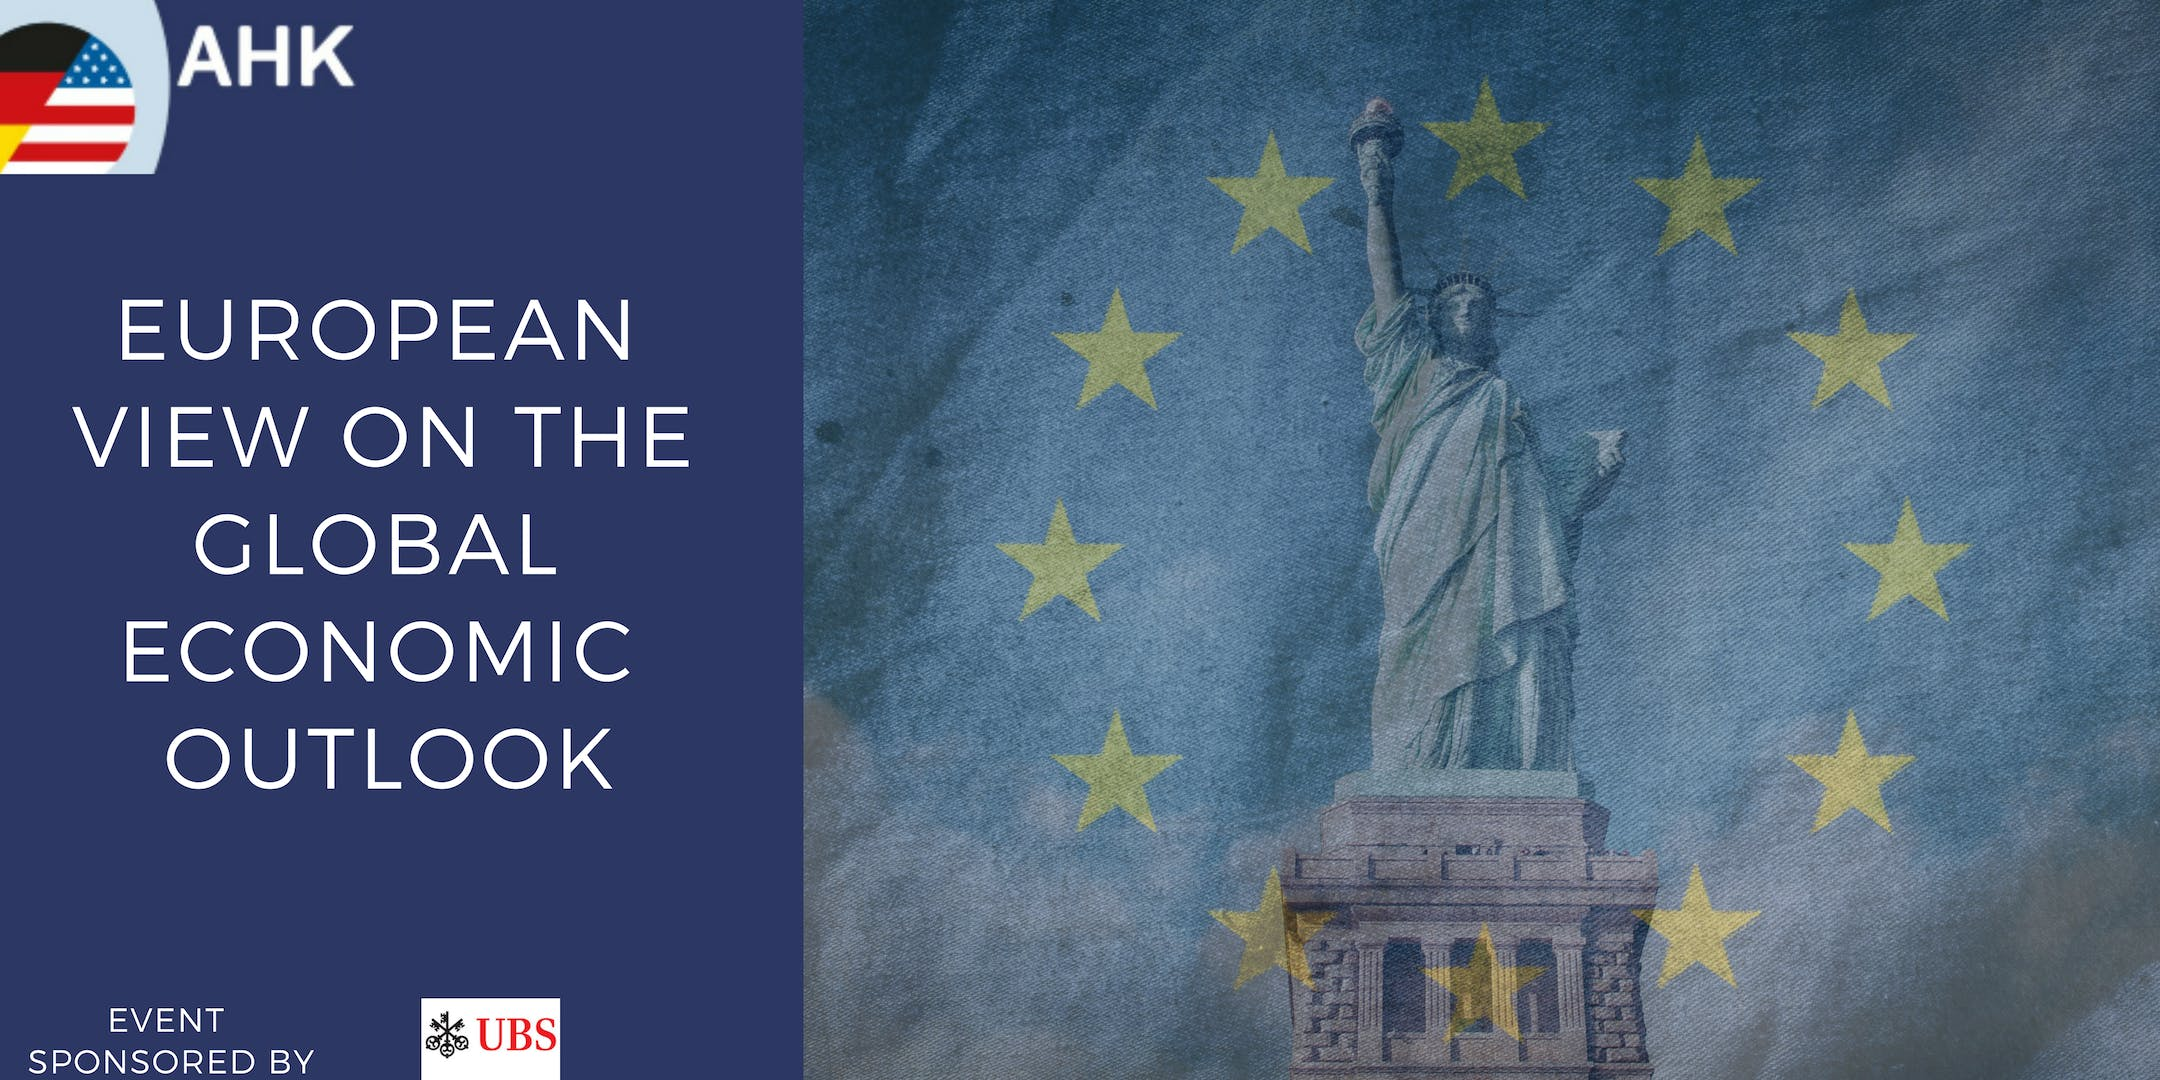 European view on the Global Economic Outlook